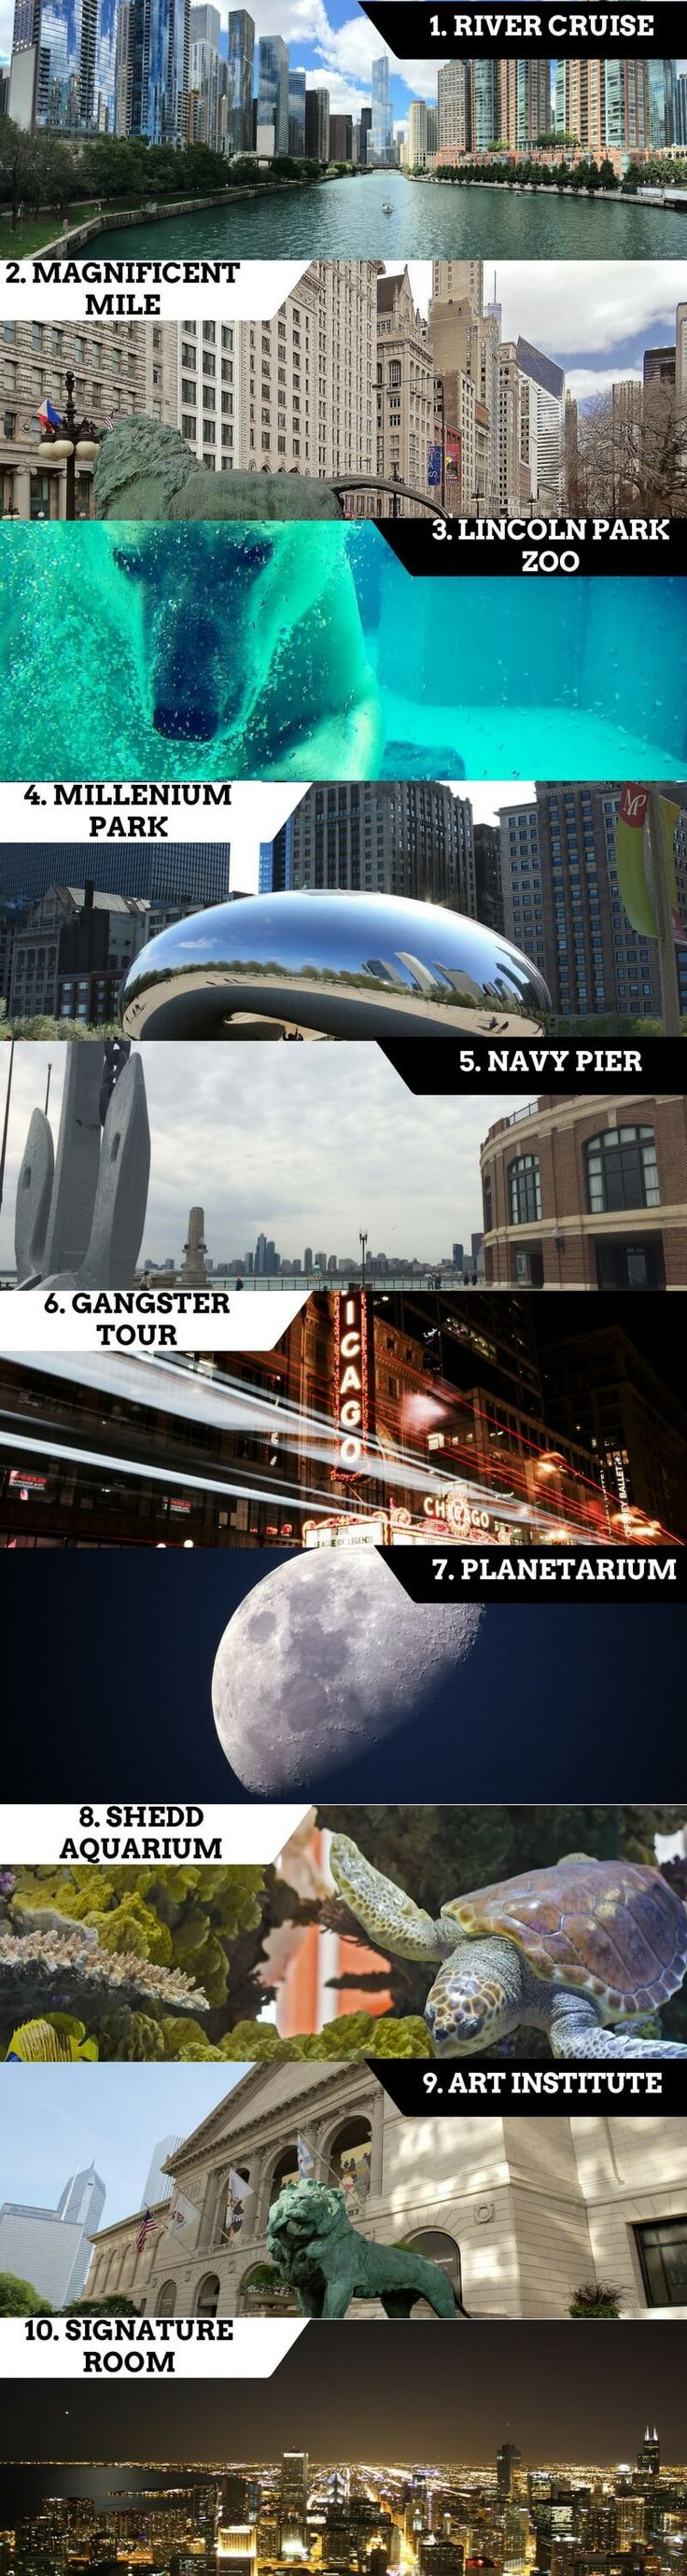 48 Hours in Chicago: Things To Do, Where To Stay & Where To Eat! Click for all of the Windy City's Highlights to make help plan your weekend trip ********************************************************************************* Chicago Things To Do   Chicago Weekend Guide   Top Things To Do in Chicago   Tourst Attractions Chicago   What to eat in Chicago